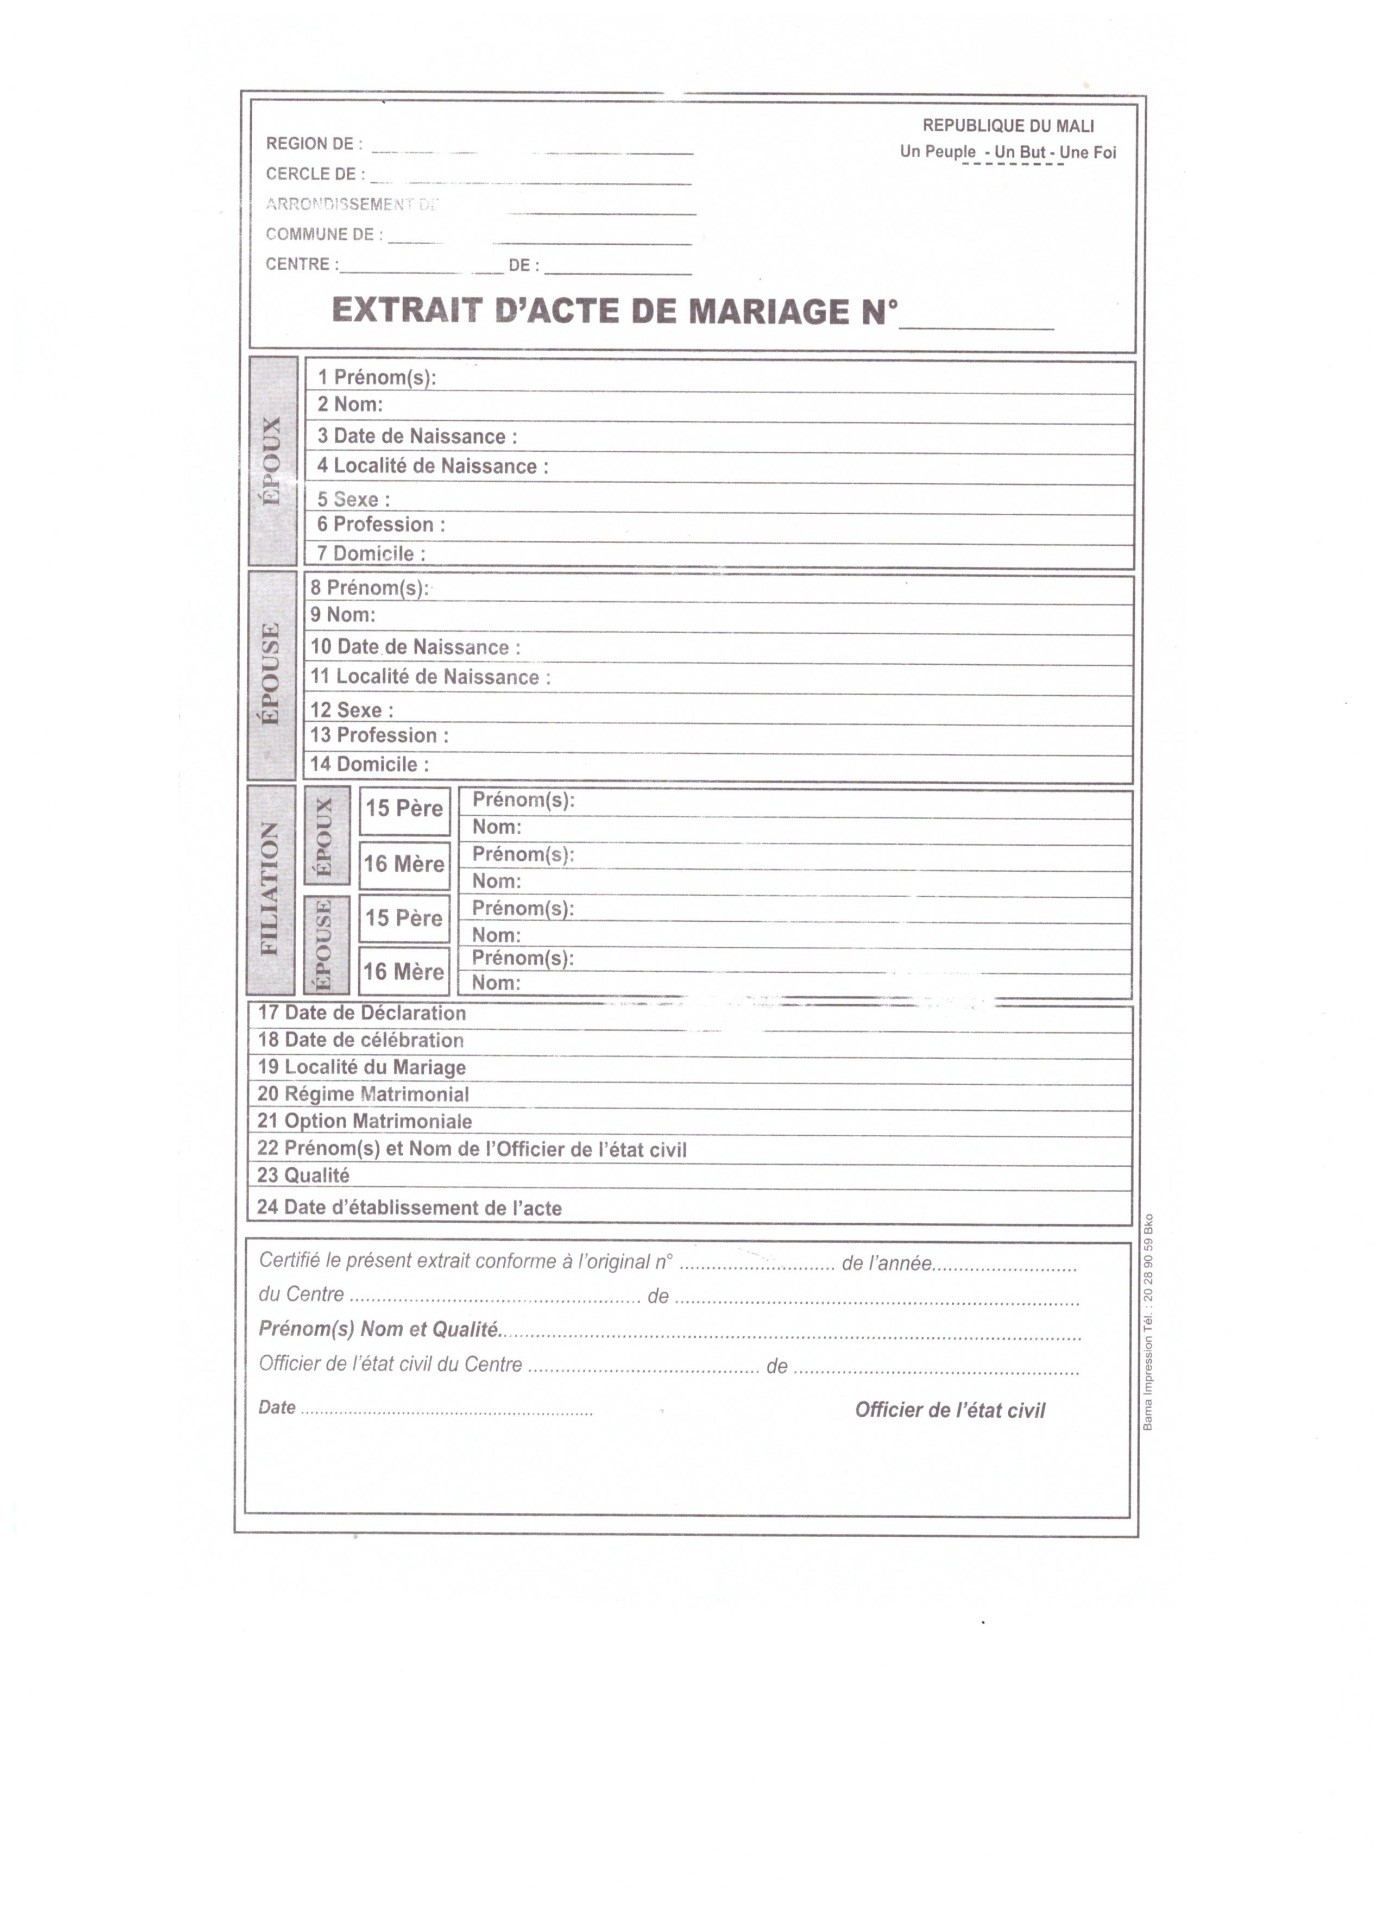 Mali unicef data download sample birth certificate yelopaper